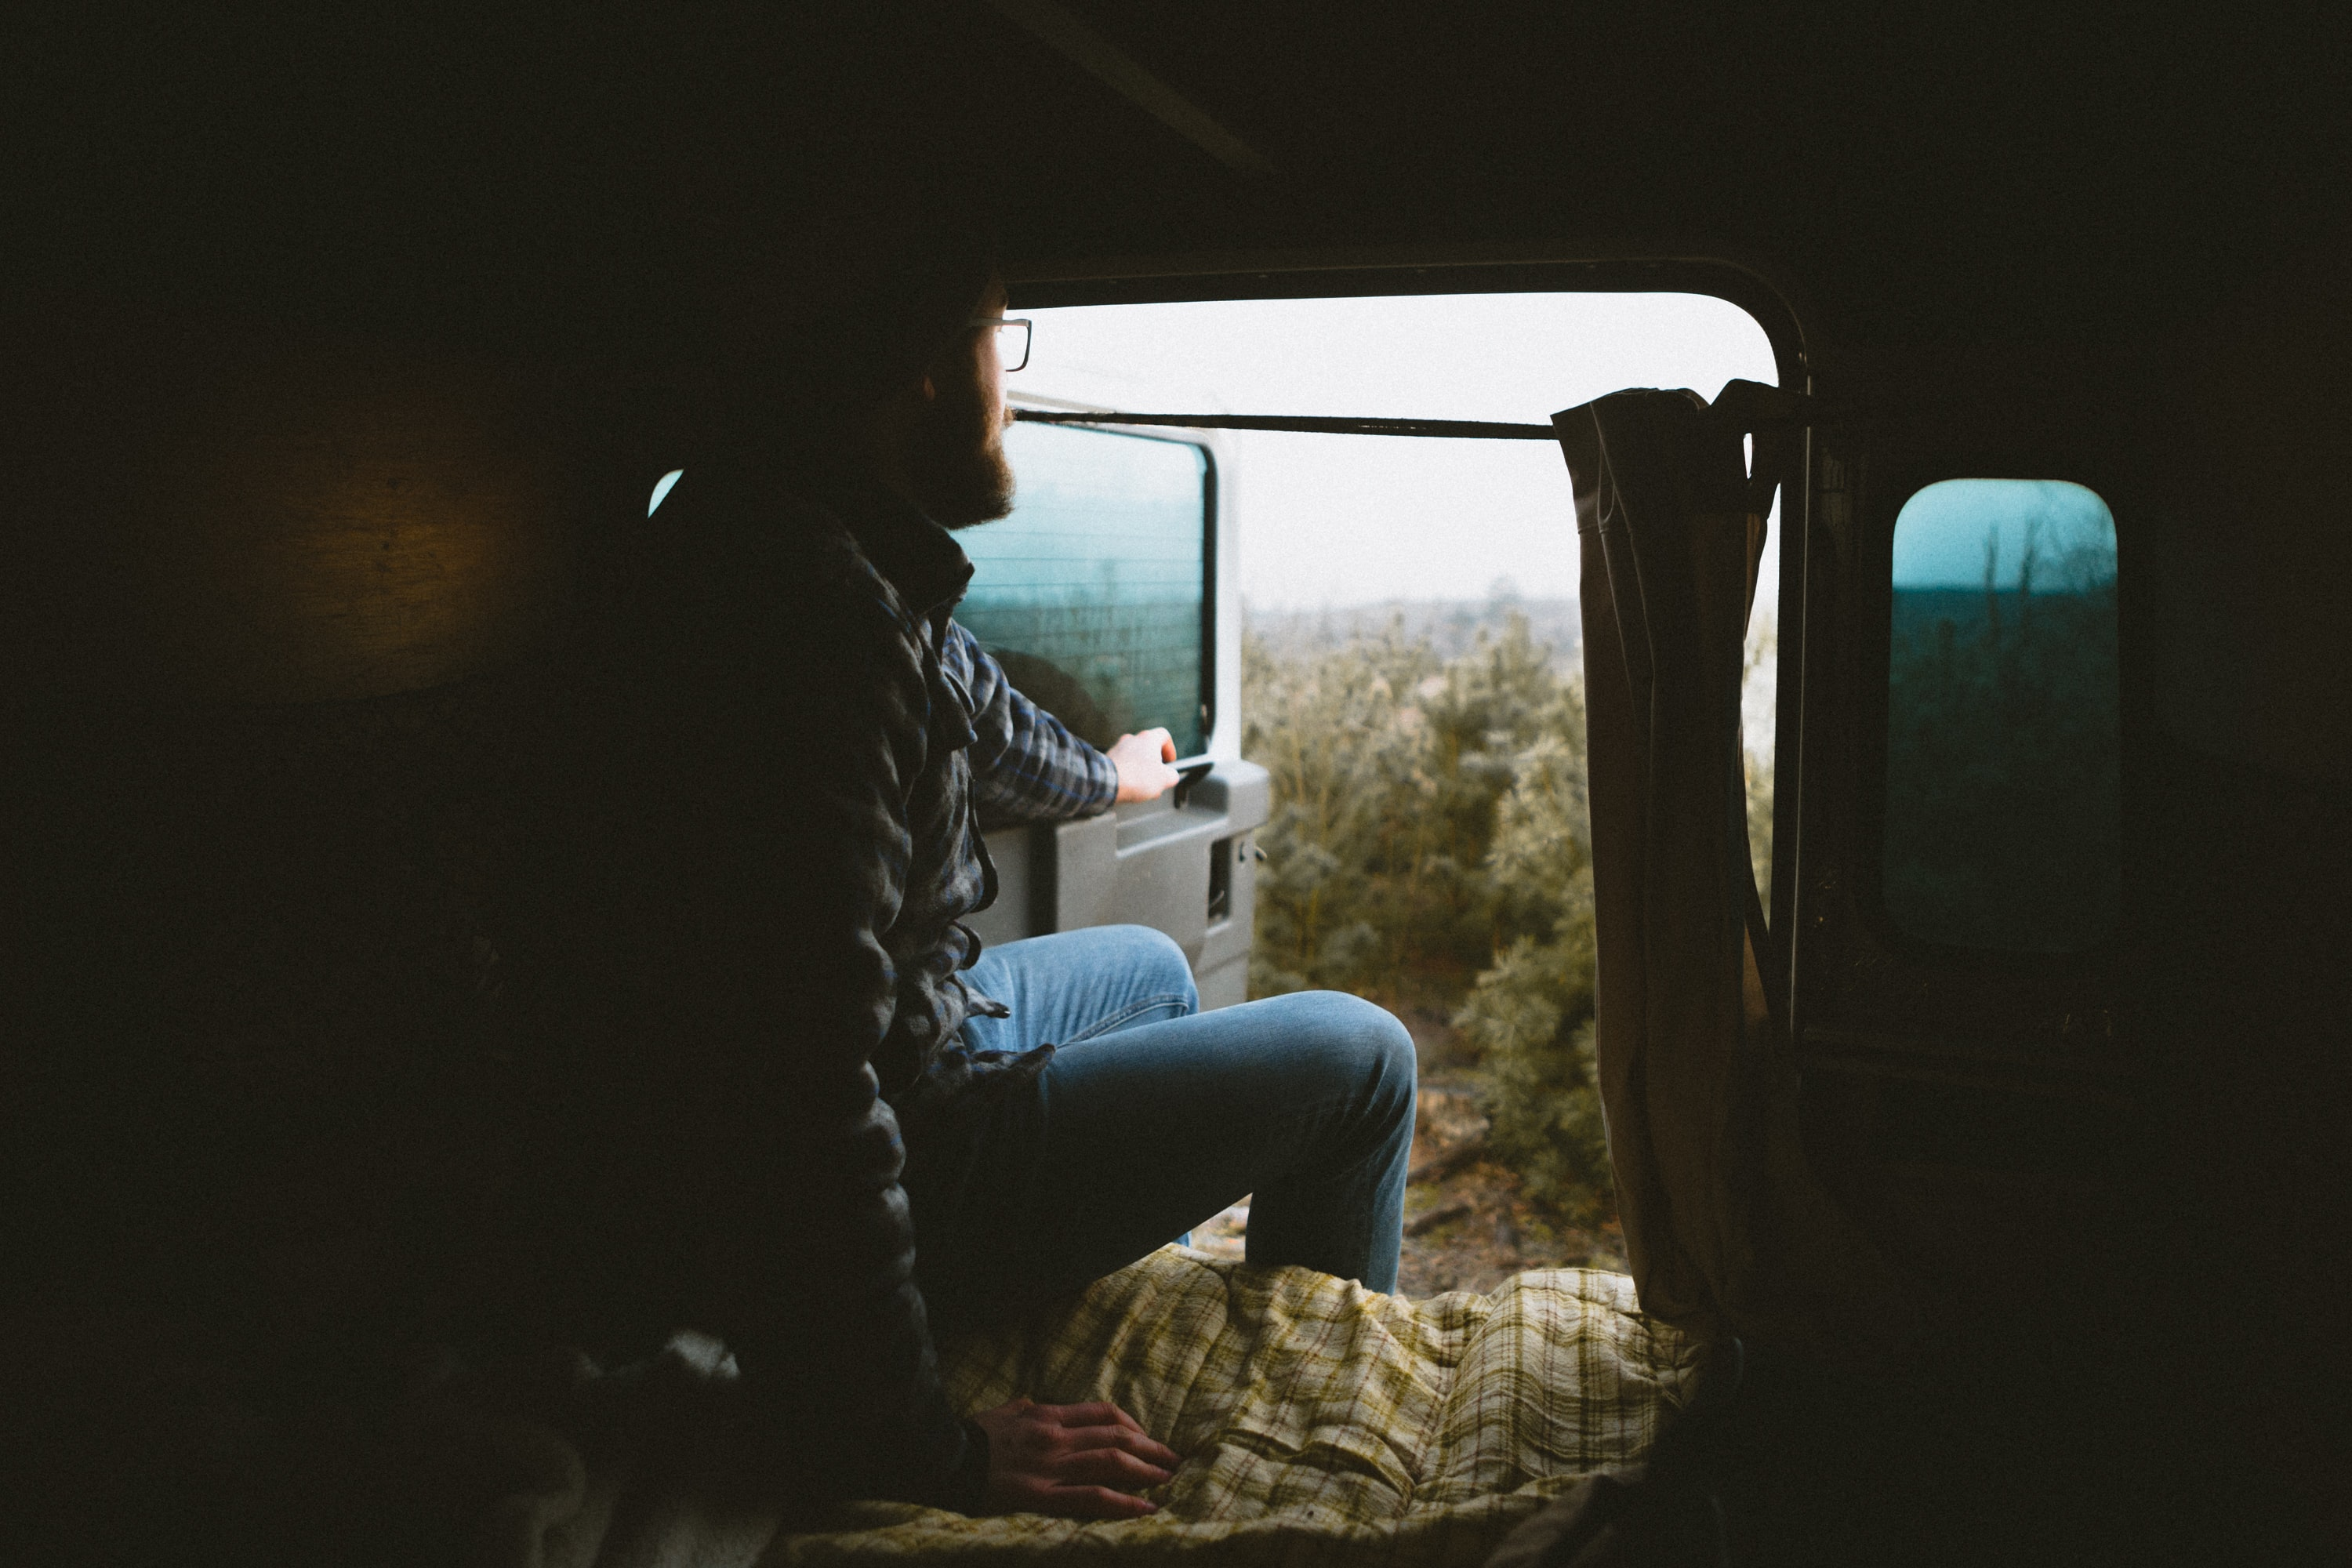 Man wearing vintage clothes sitting in an open van on a roadtrip